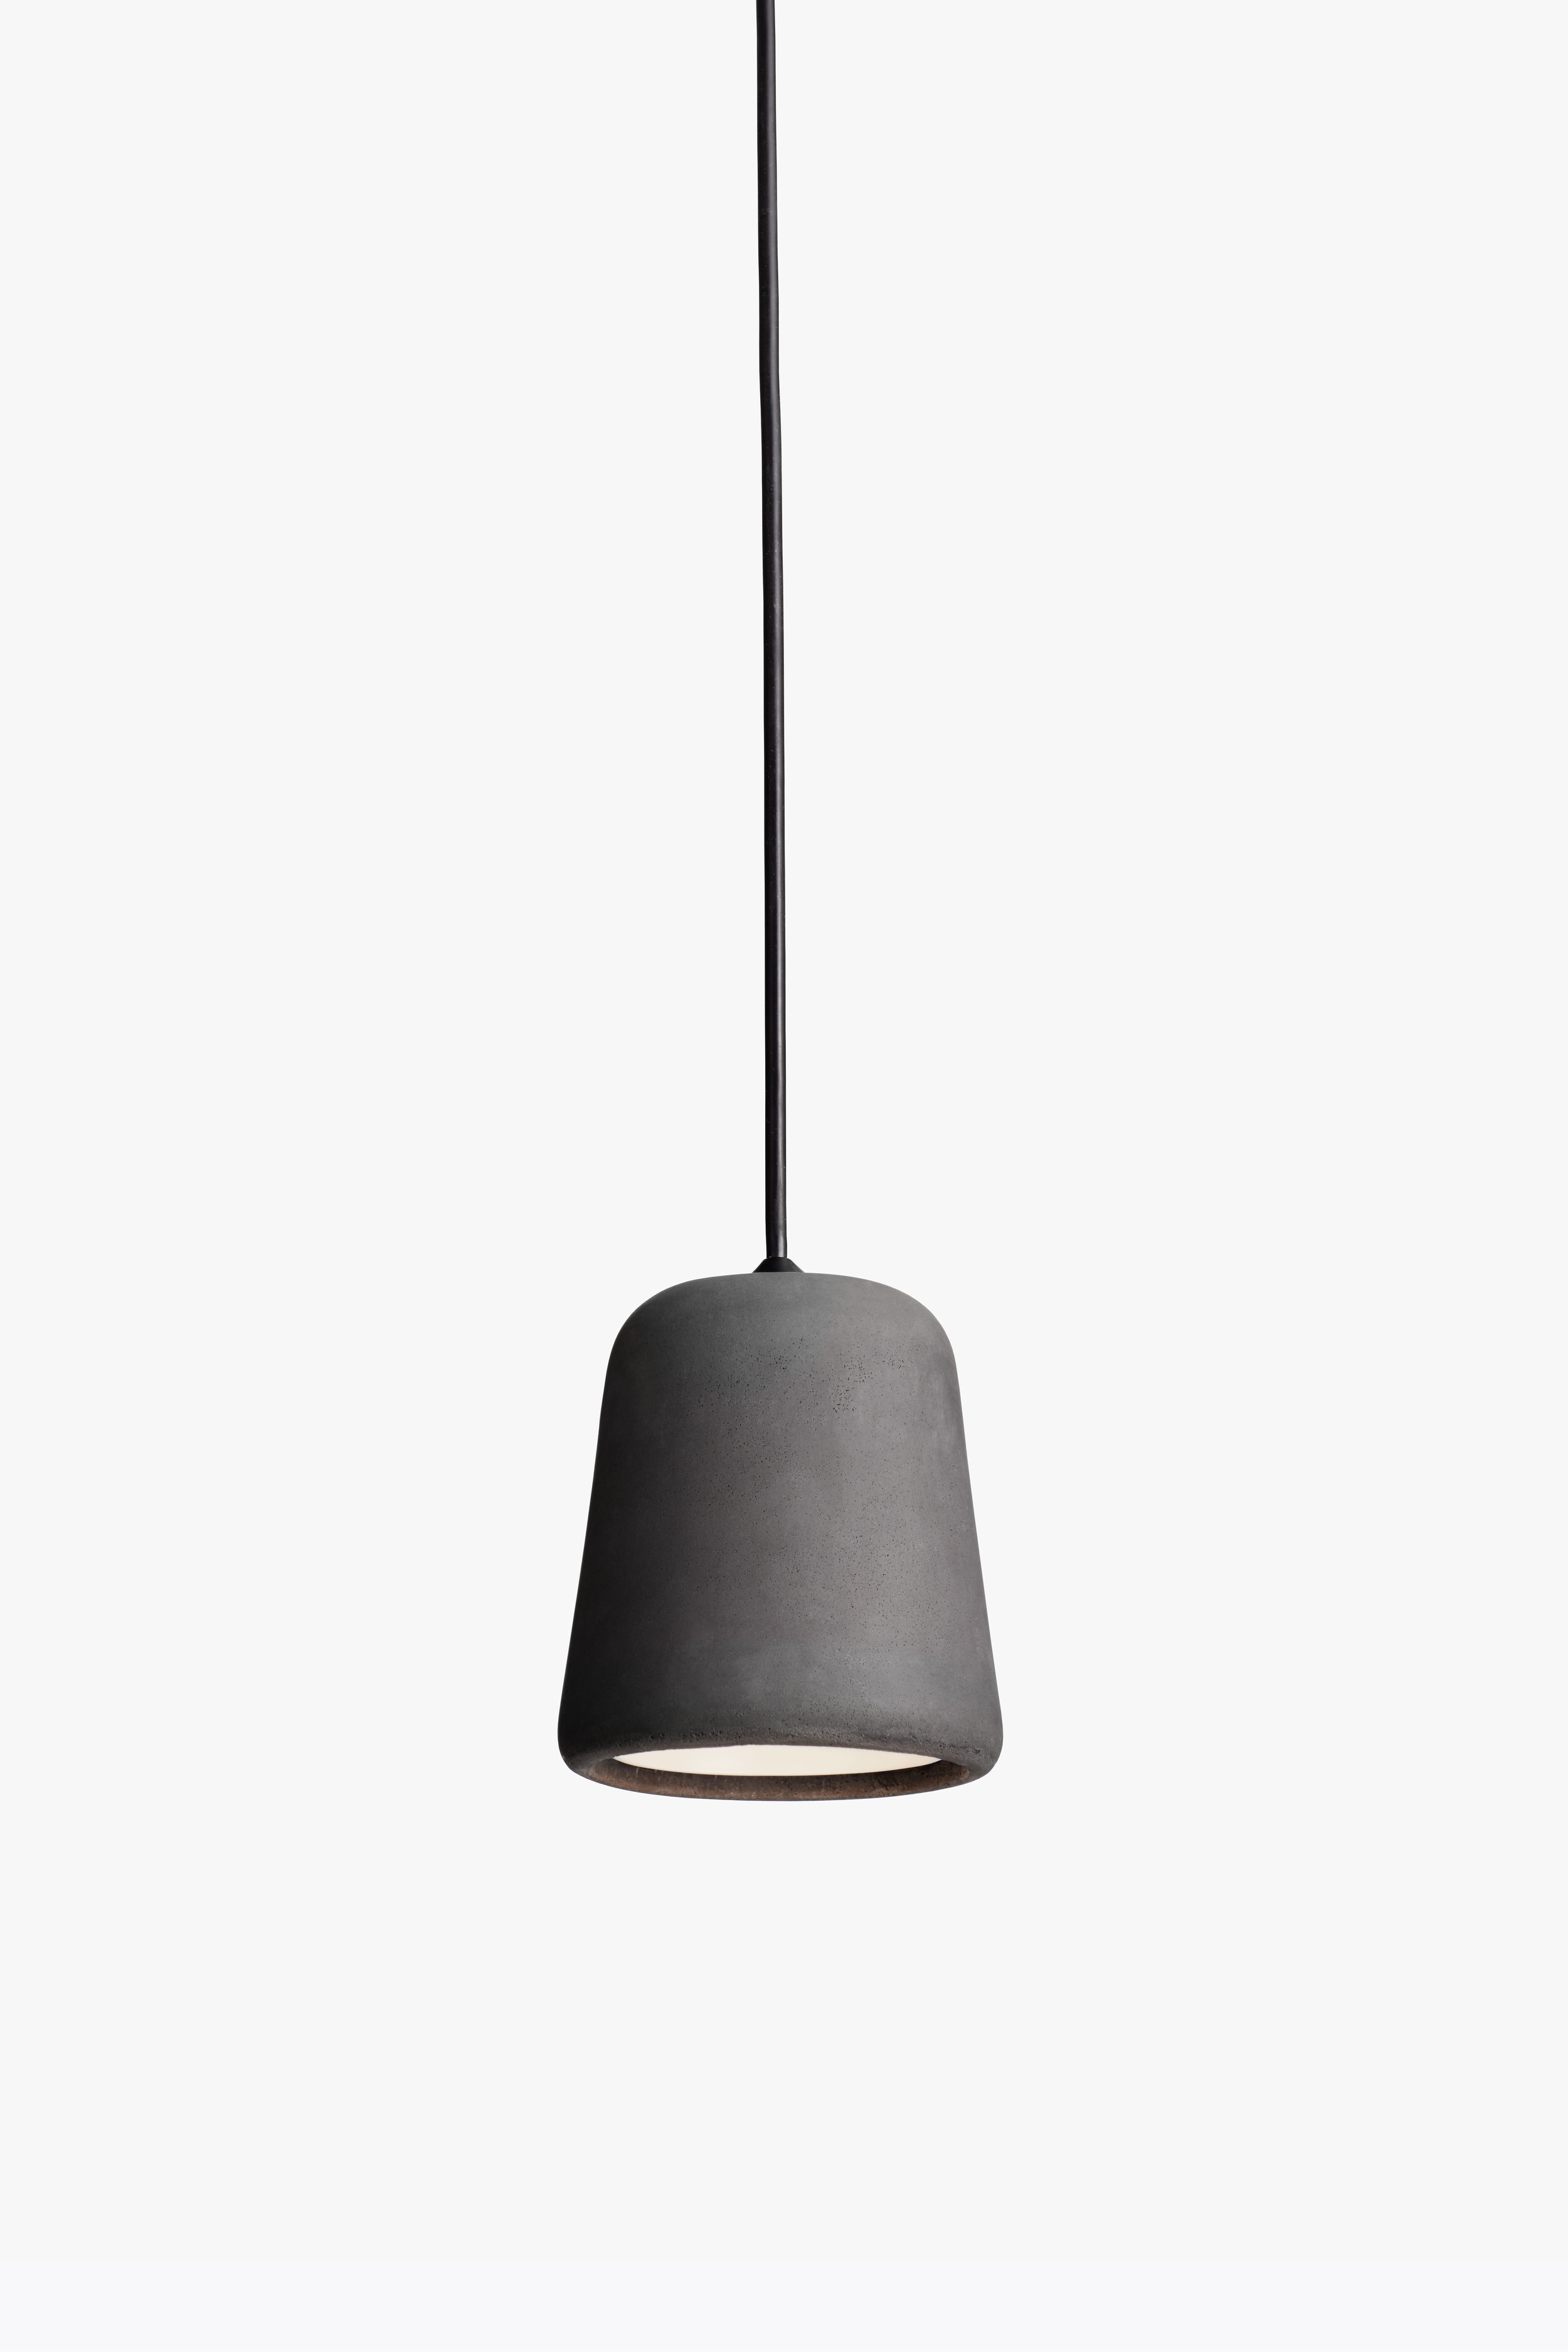 Material Pendant, Dark Grey Concrete, New Works, High Res.jpg